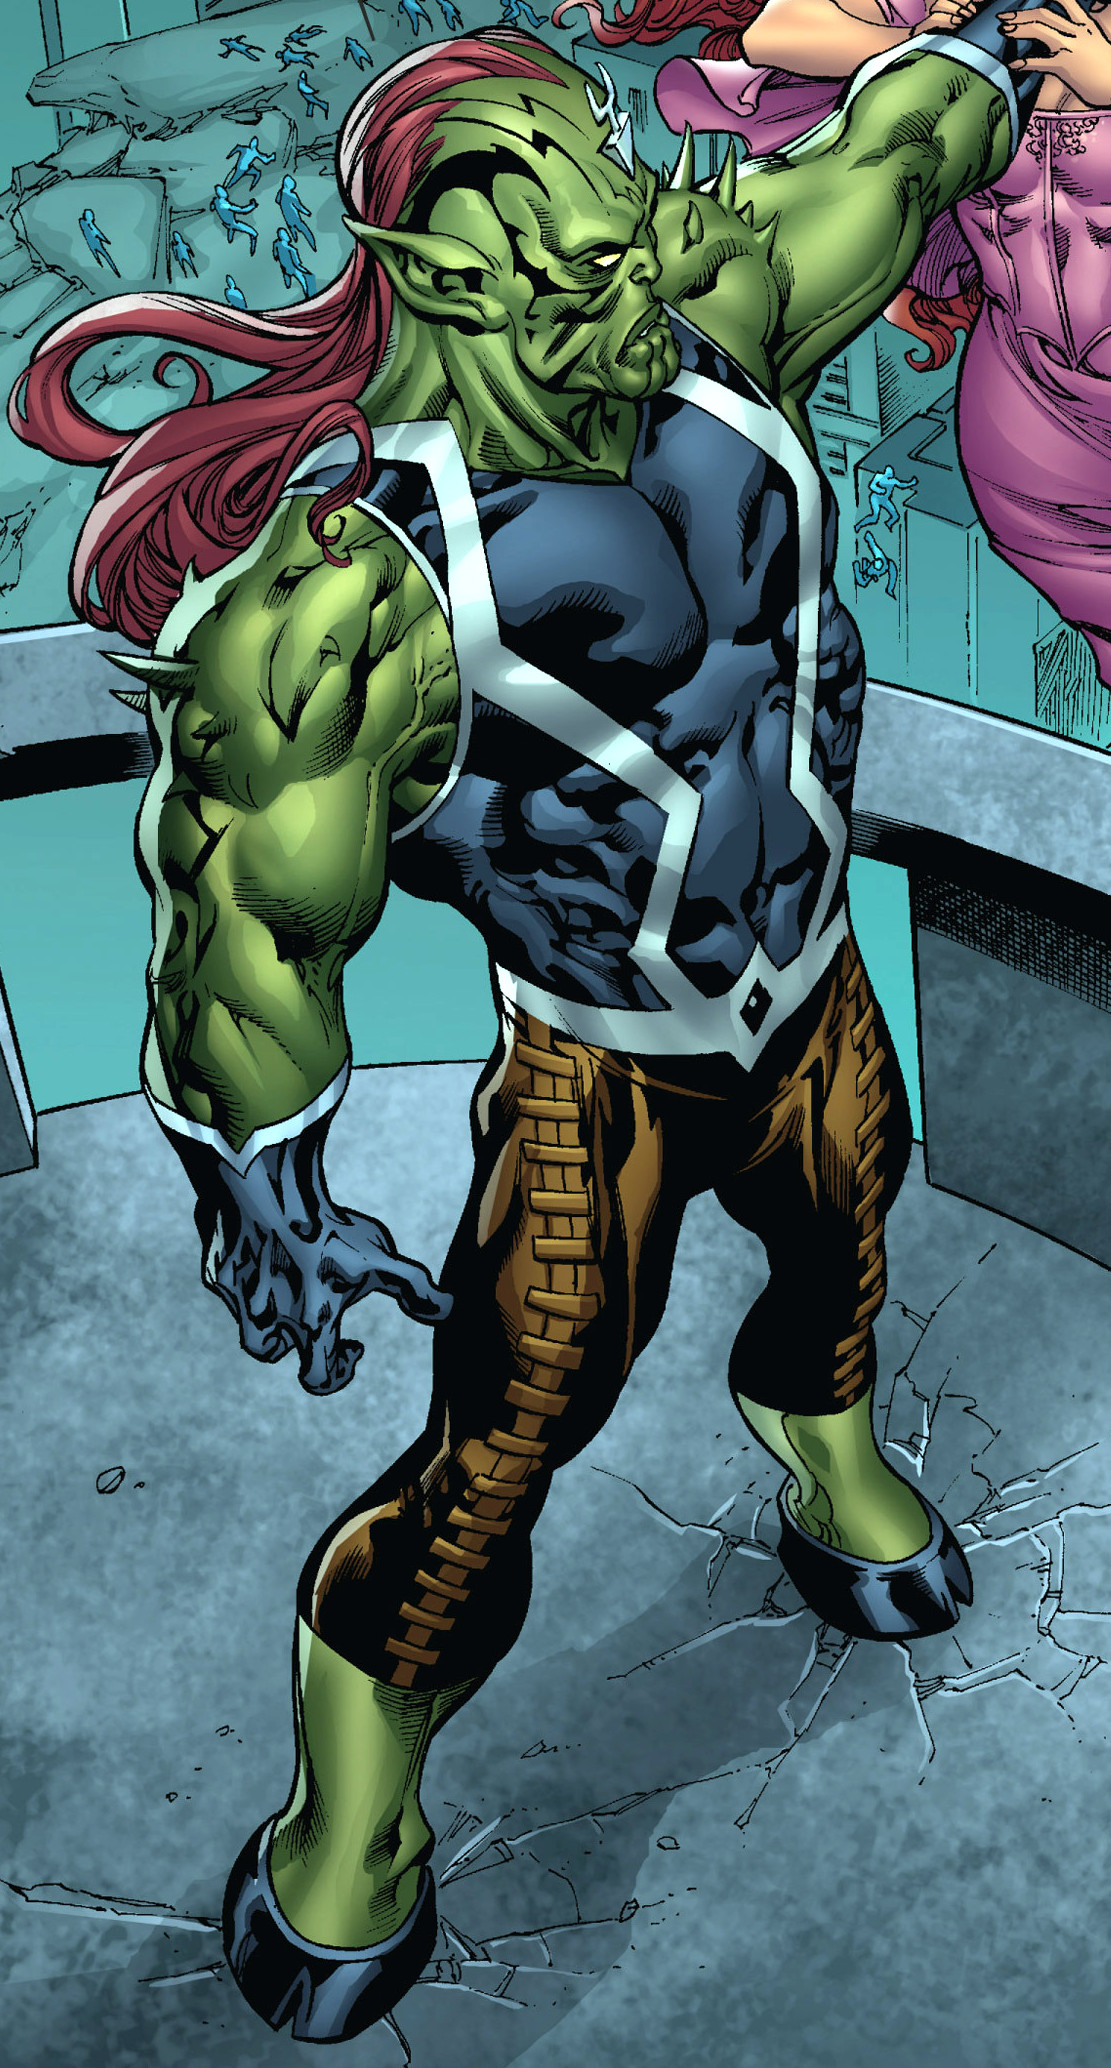 Inhumans (Skrull) (Earth-616)